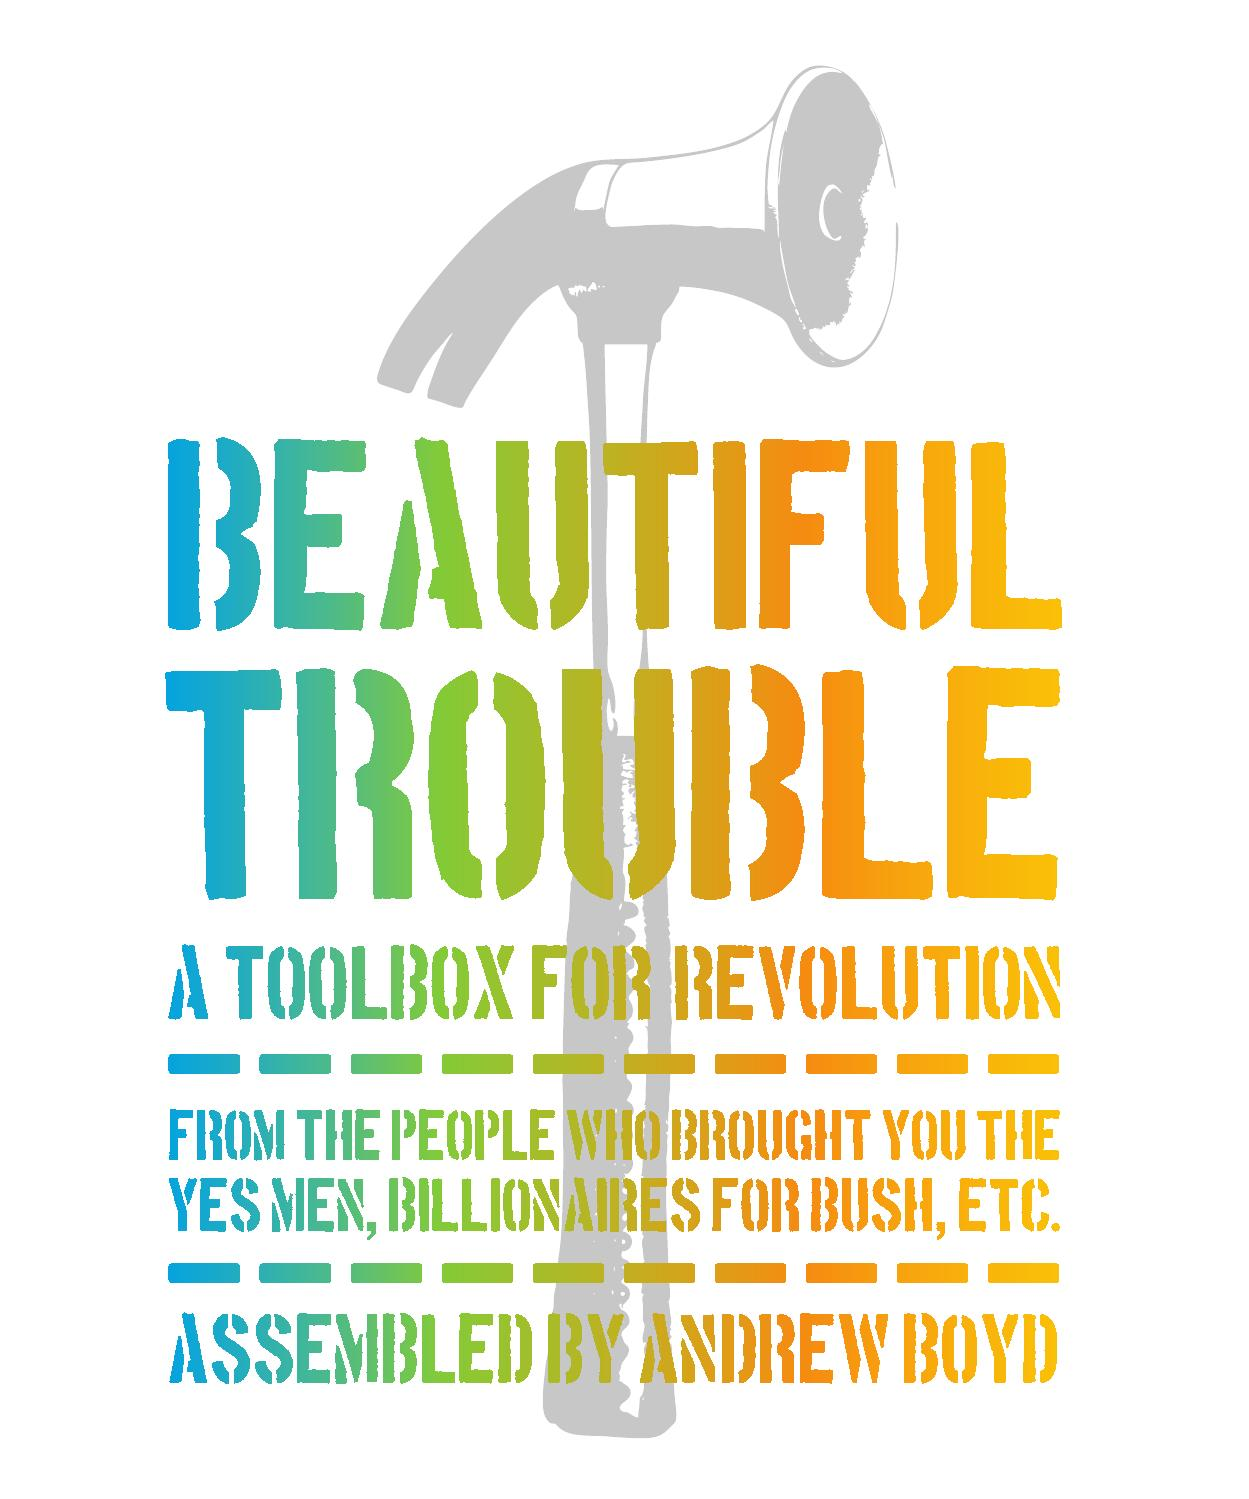 b537a02d0e00 Boyd Andrew ed Beautiful Trouble A Toolbox for Revolution by ODA Connexio -  issuu